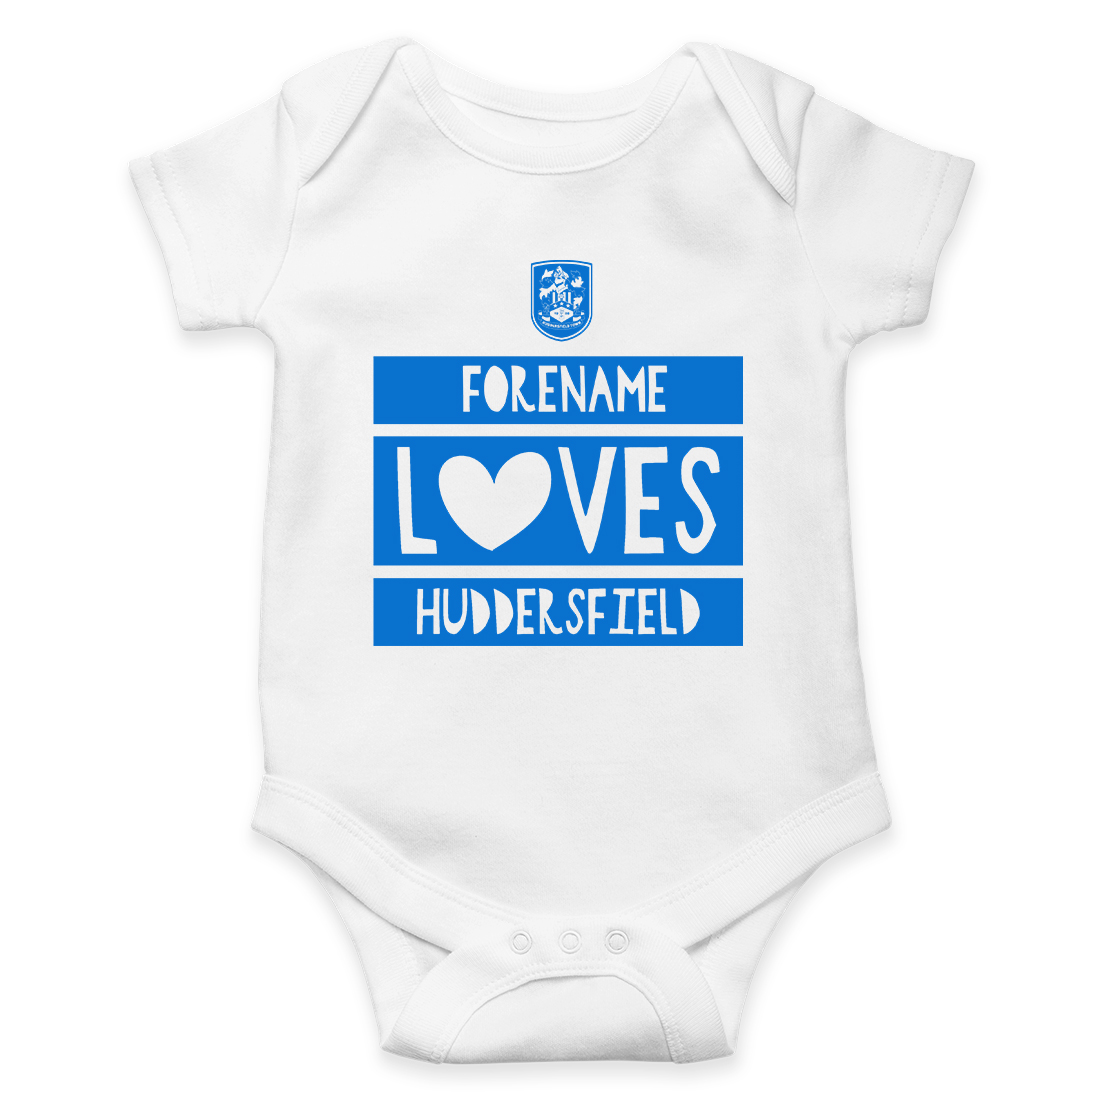 Huddersfield Town AFC Loves Baby Bodysuit